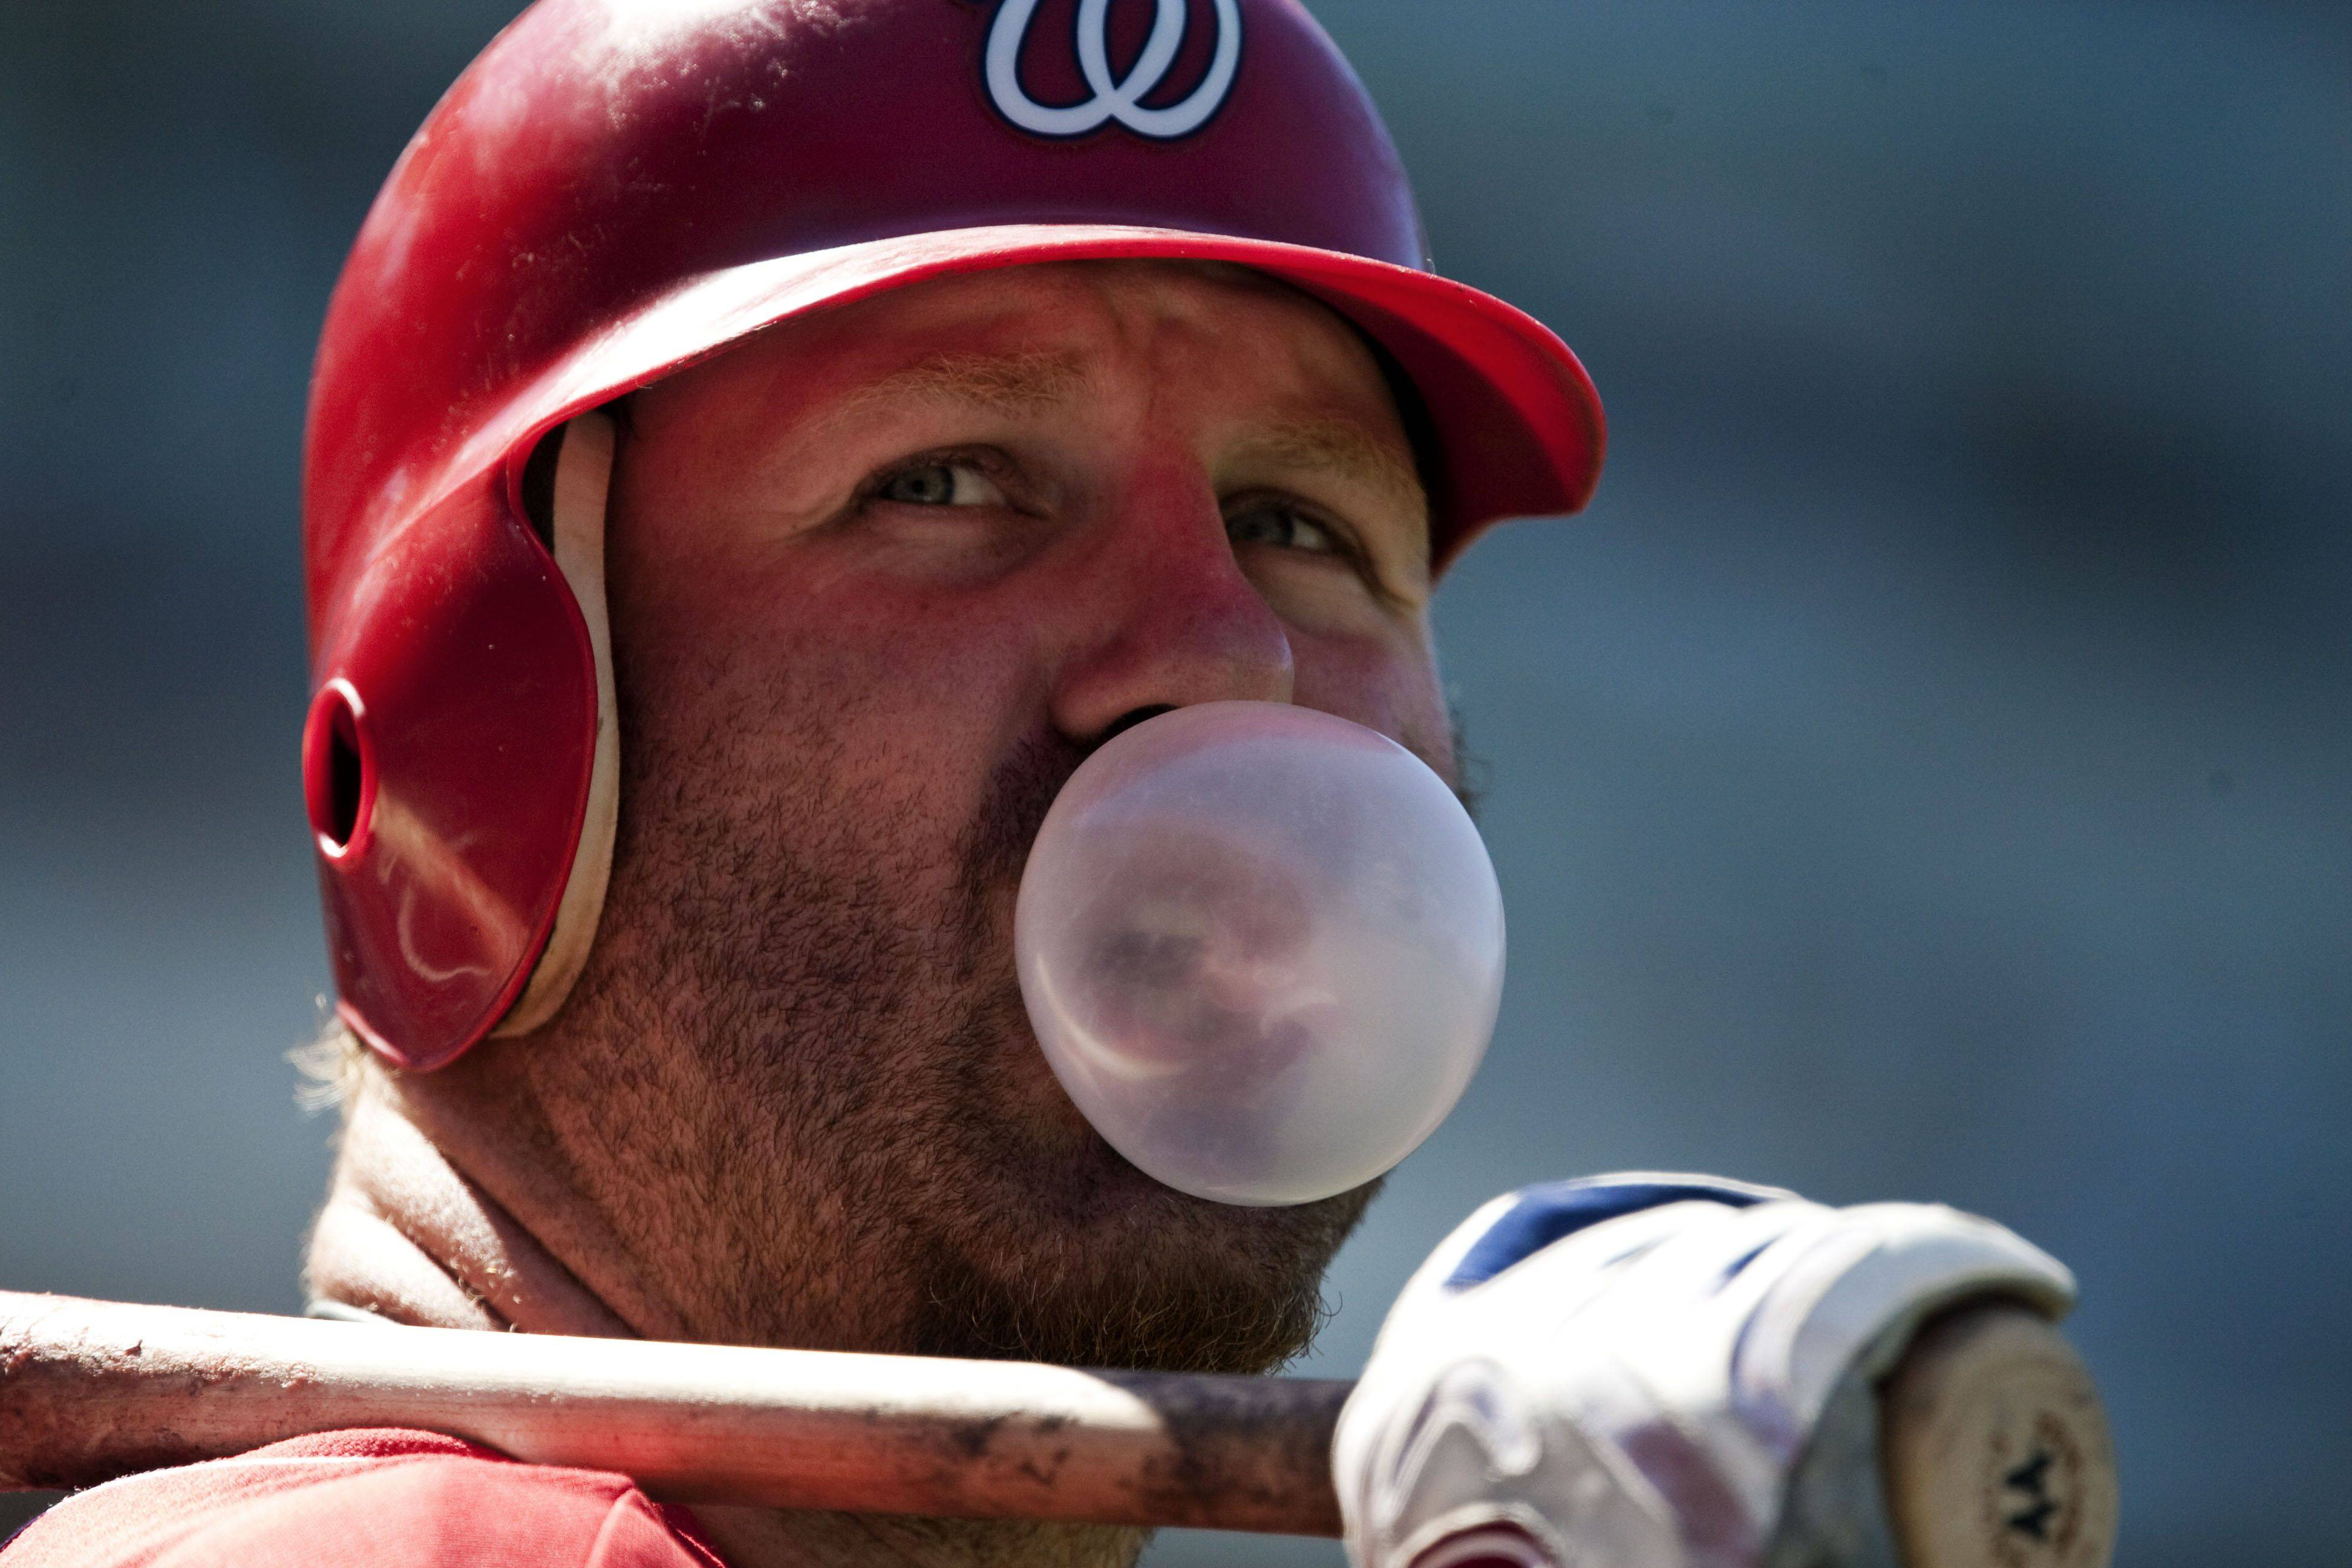 Washington Nationals' Adam Dunn blows a bubble on the on-deck circle during the sixth inning of a baseball game against the San Francisco Giants.